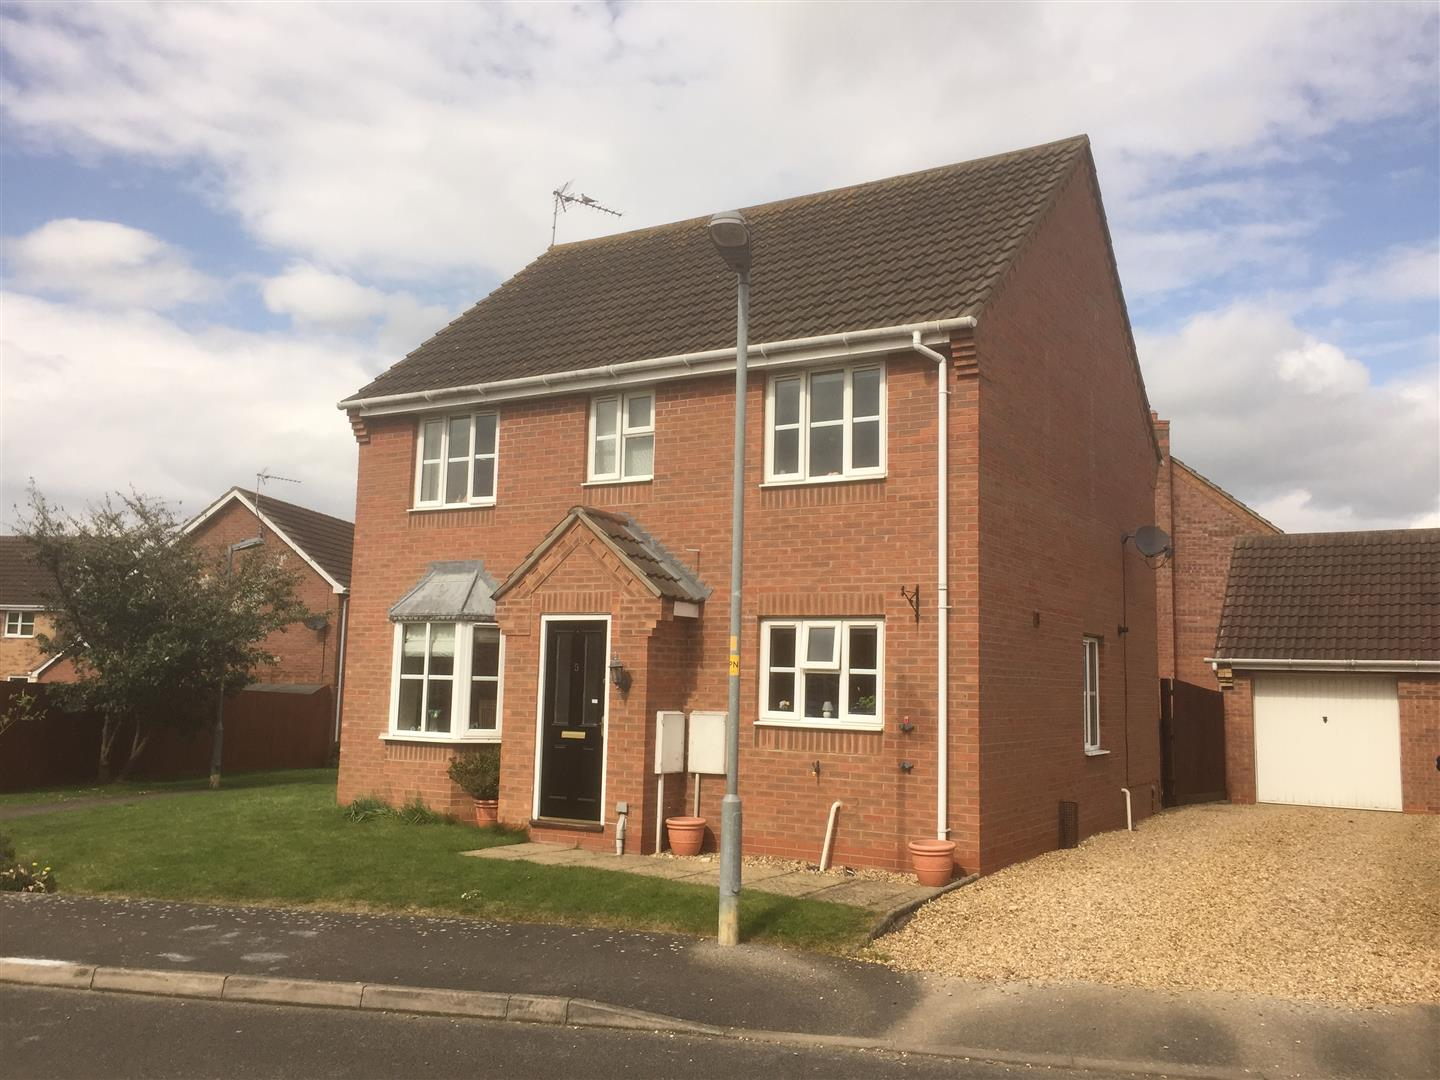 4 bedroom property in Cranwell Village